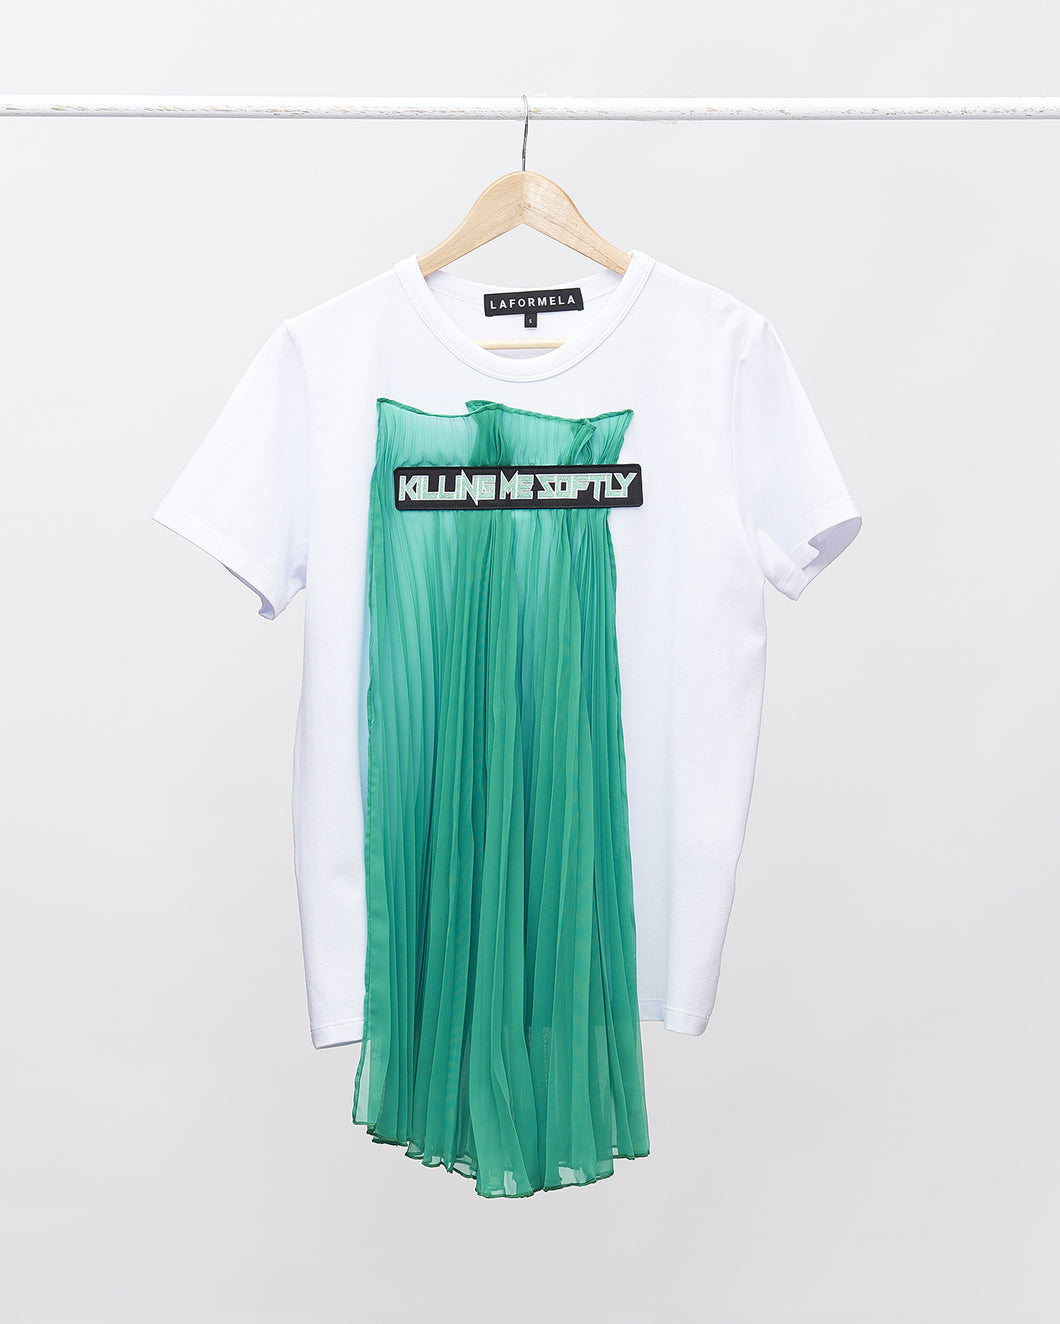 LAFORMELA T-shirt with Asymmetric Pleat and Green Patch